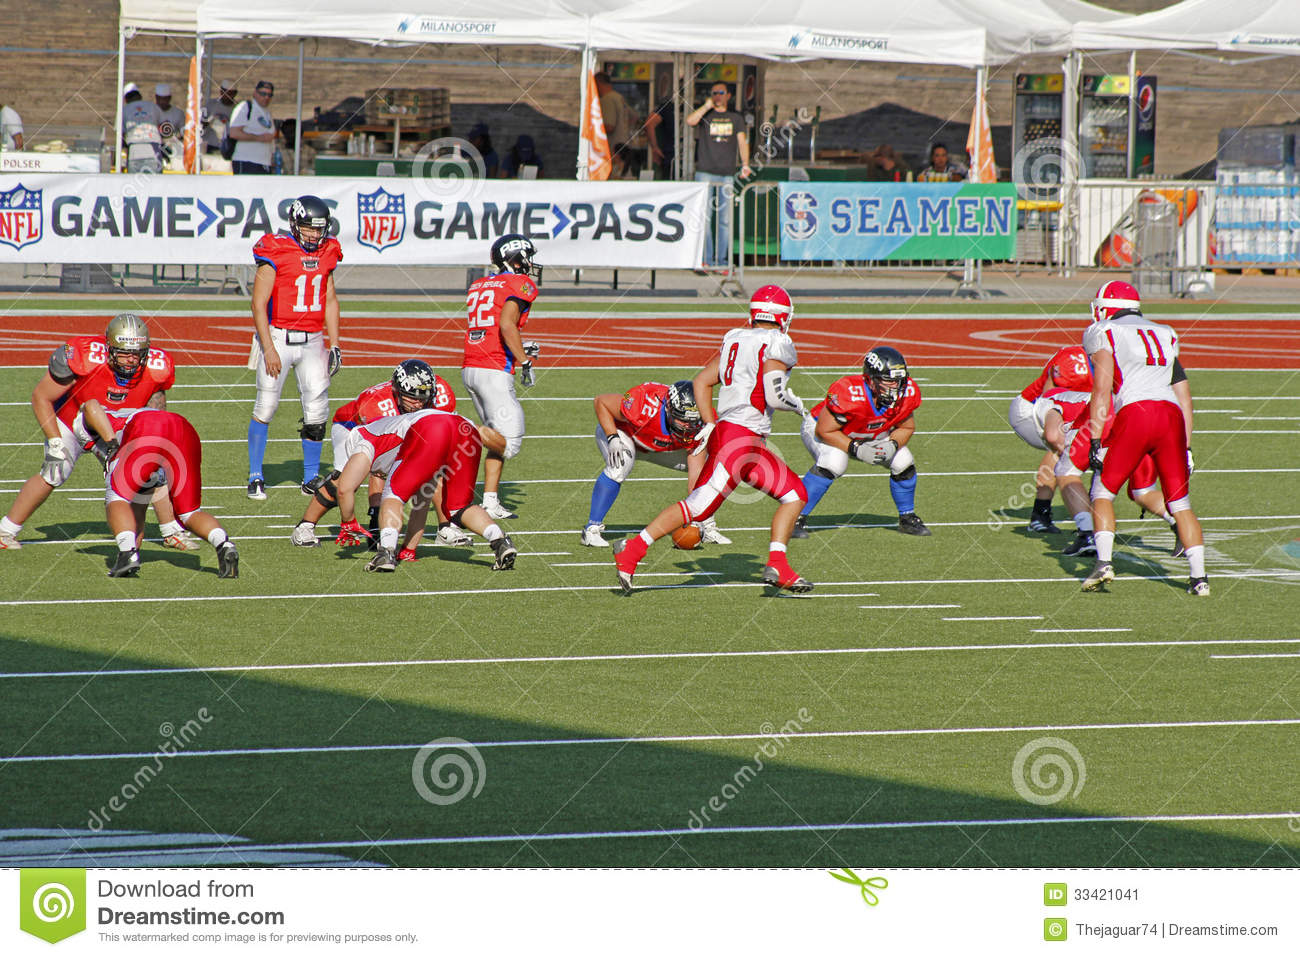 european football vs american football American football soccer rules players have to play with their legs if player uses their hands it will count as hand ball and the ball wll go to the other team american football rules players have to play wththeir hands they use their legs to kck the ball as field goal vs american football world .